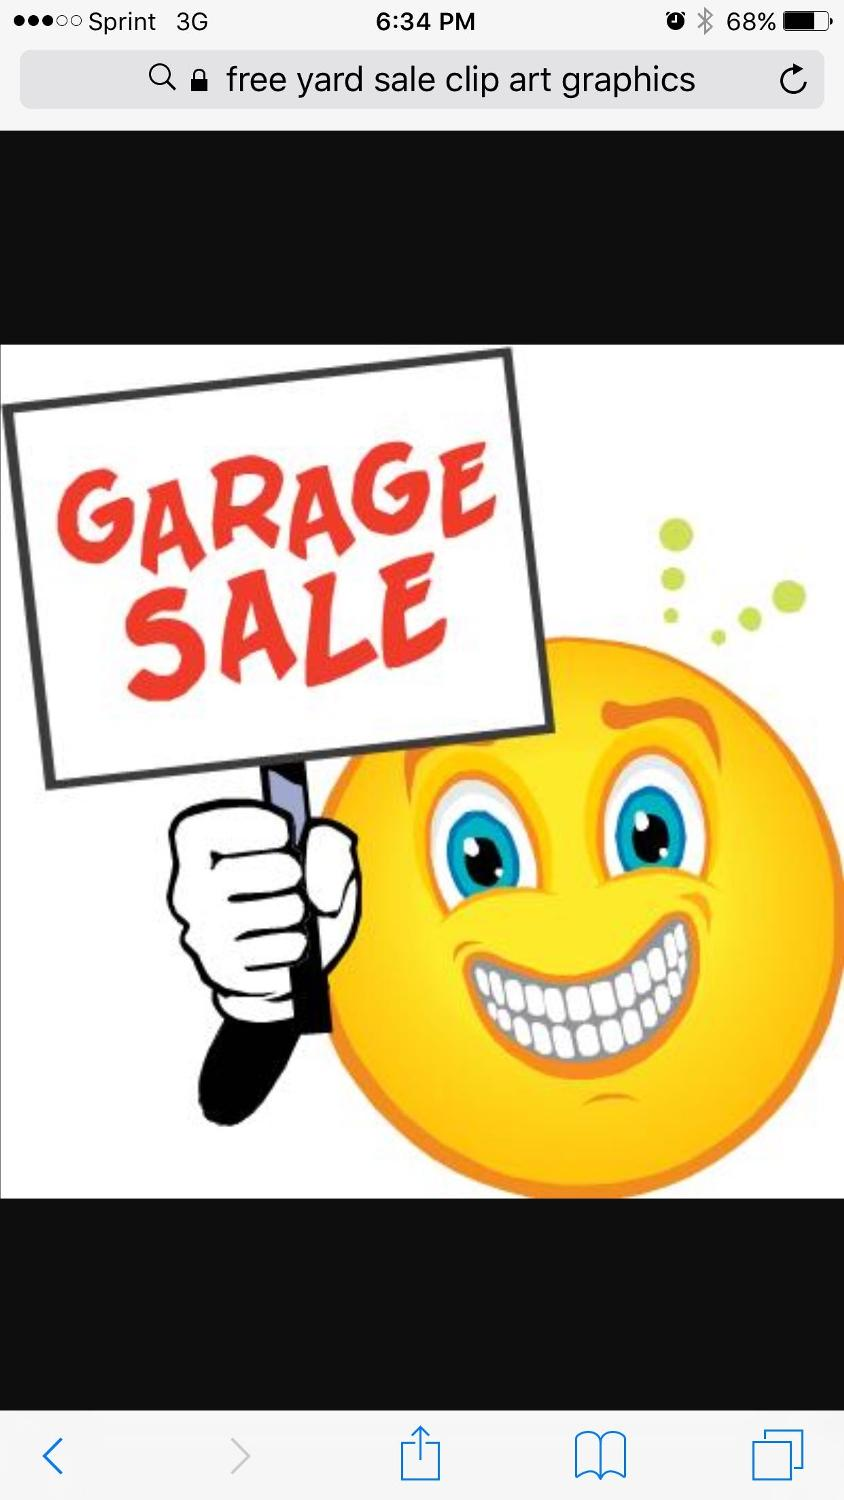 Multi family garage sale in prosper texas for 2017 - Nearest garage to my current location ...